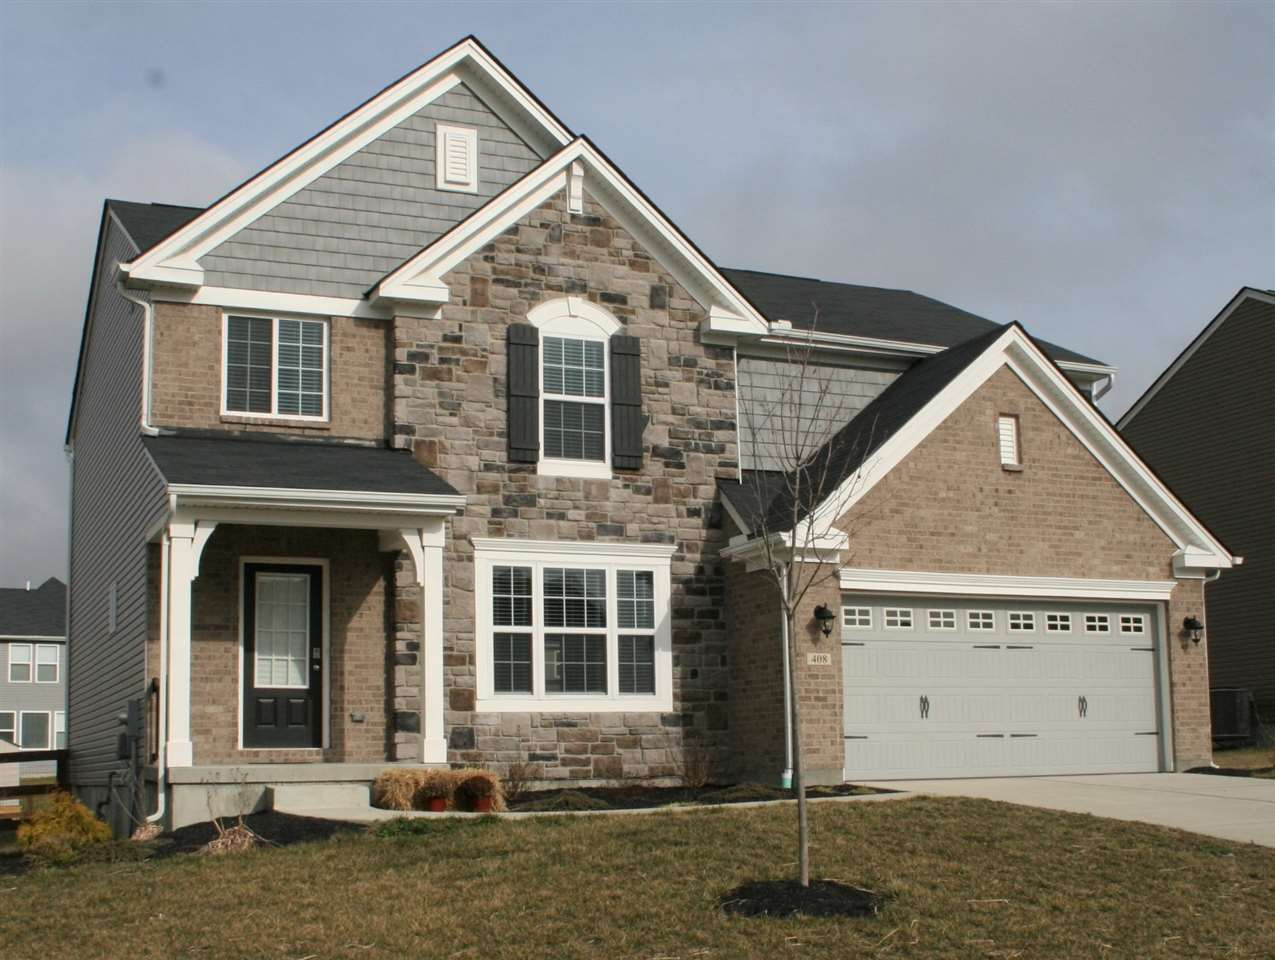 Photo 1 for 408 Rupp Ct Walton, KY 41094